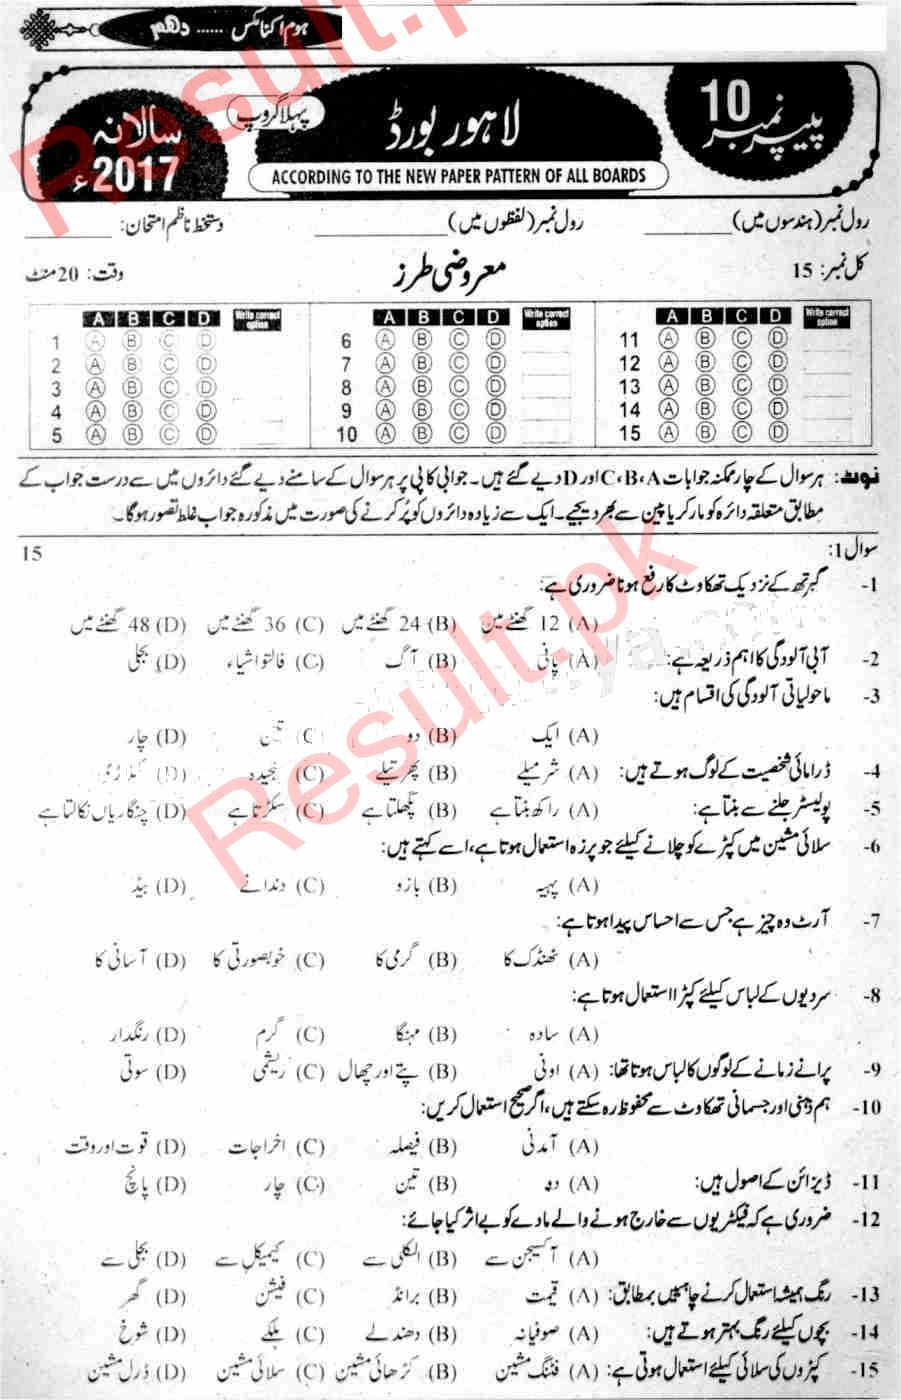 BISE Lahore Board Past Papers 2018 2019 Matric, SSC Part 1